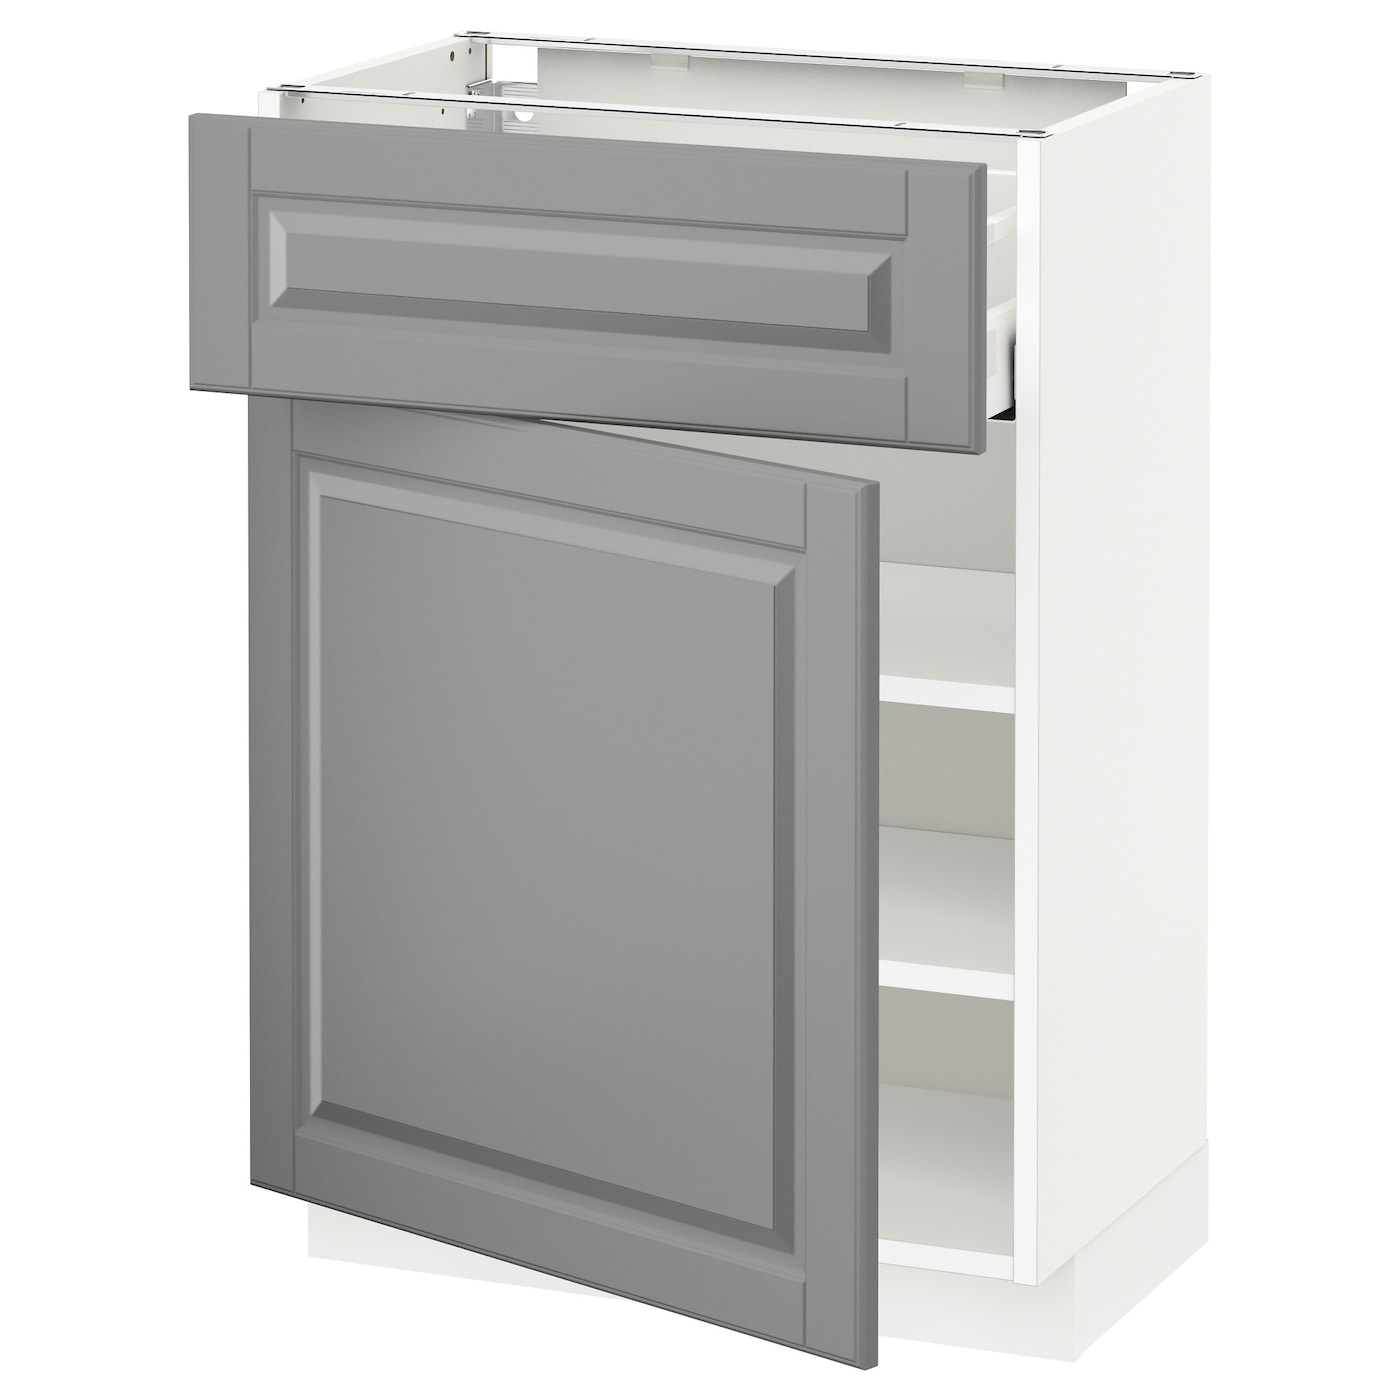 Ikea Kitchen Bodbyn Grey: METOD/MAXIMERA Base Cabinet With Drawer/door White/bodbyn